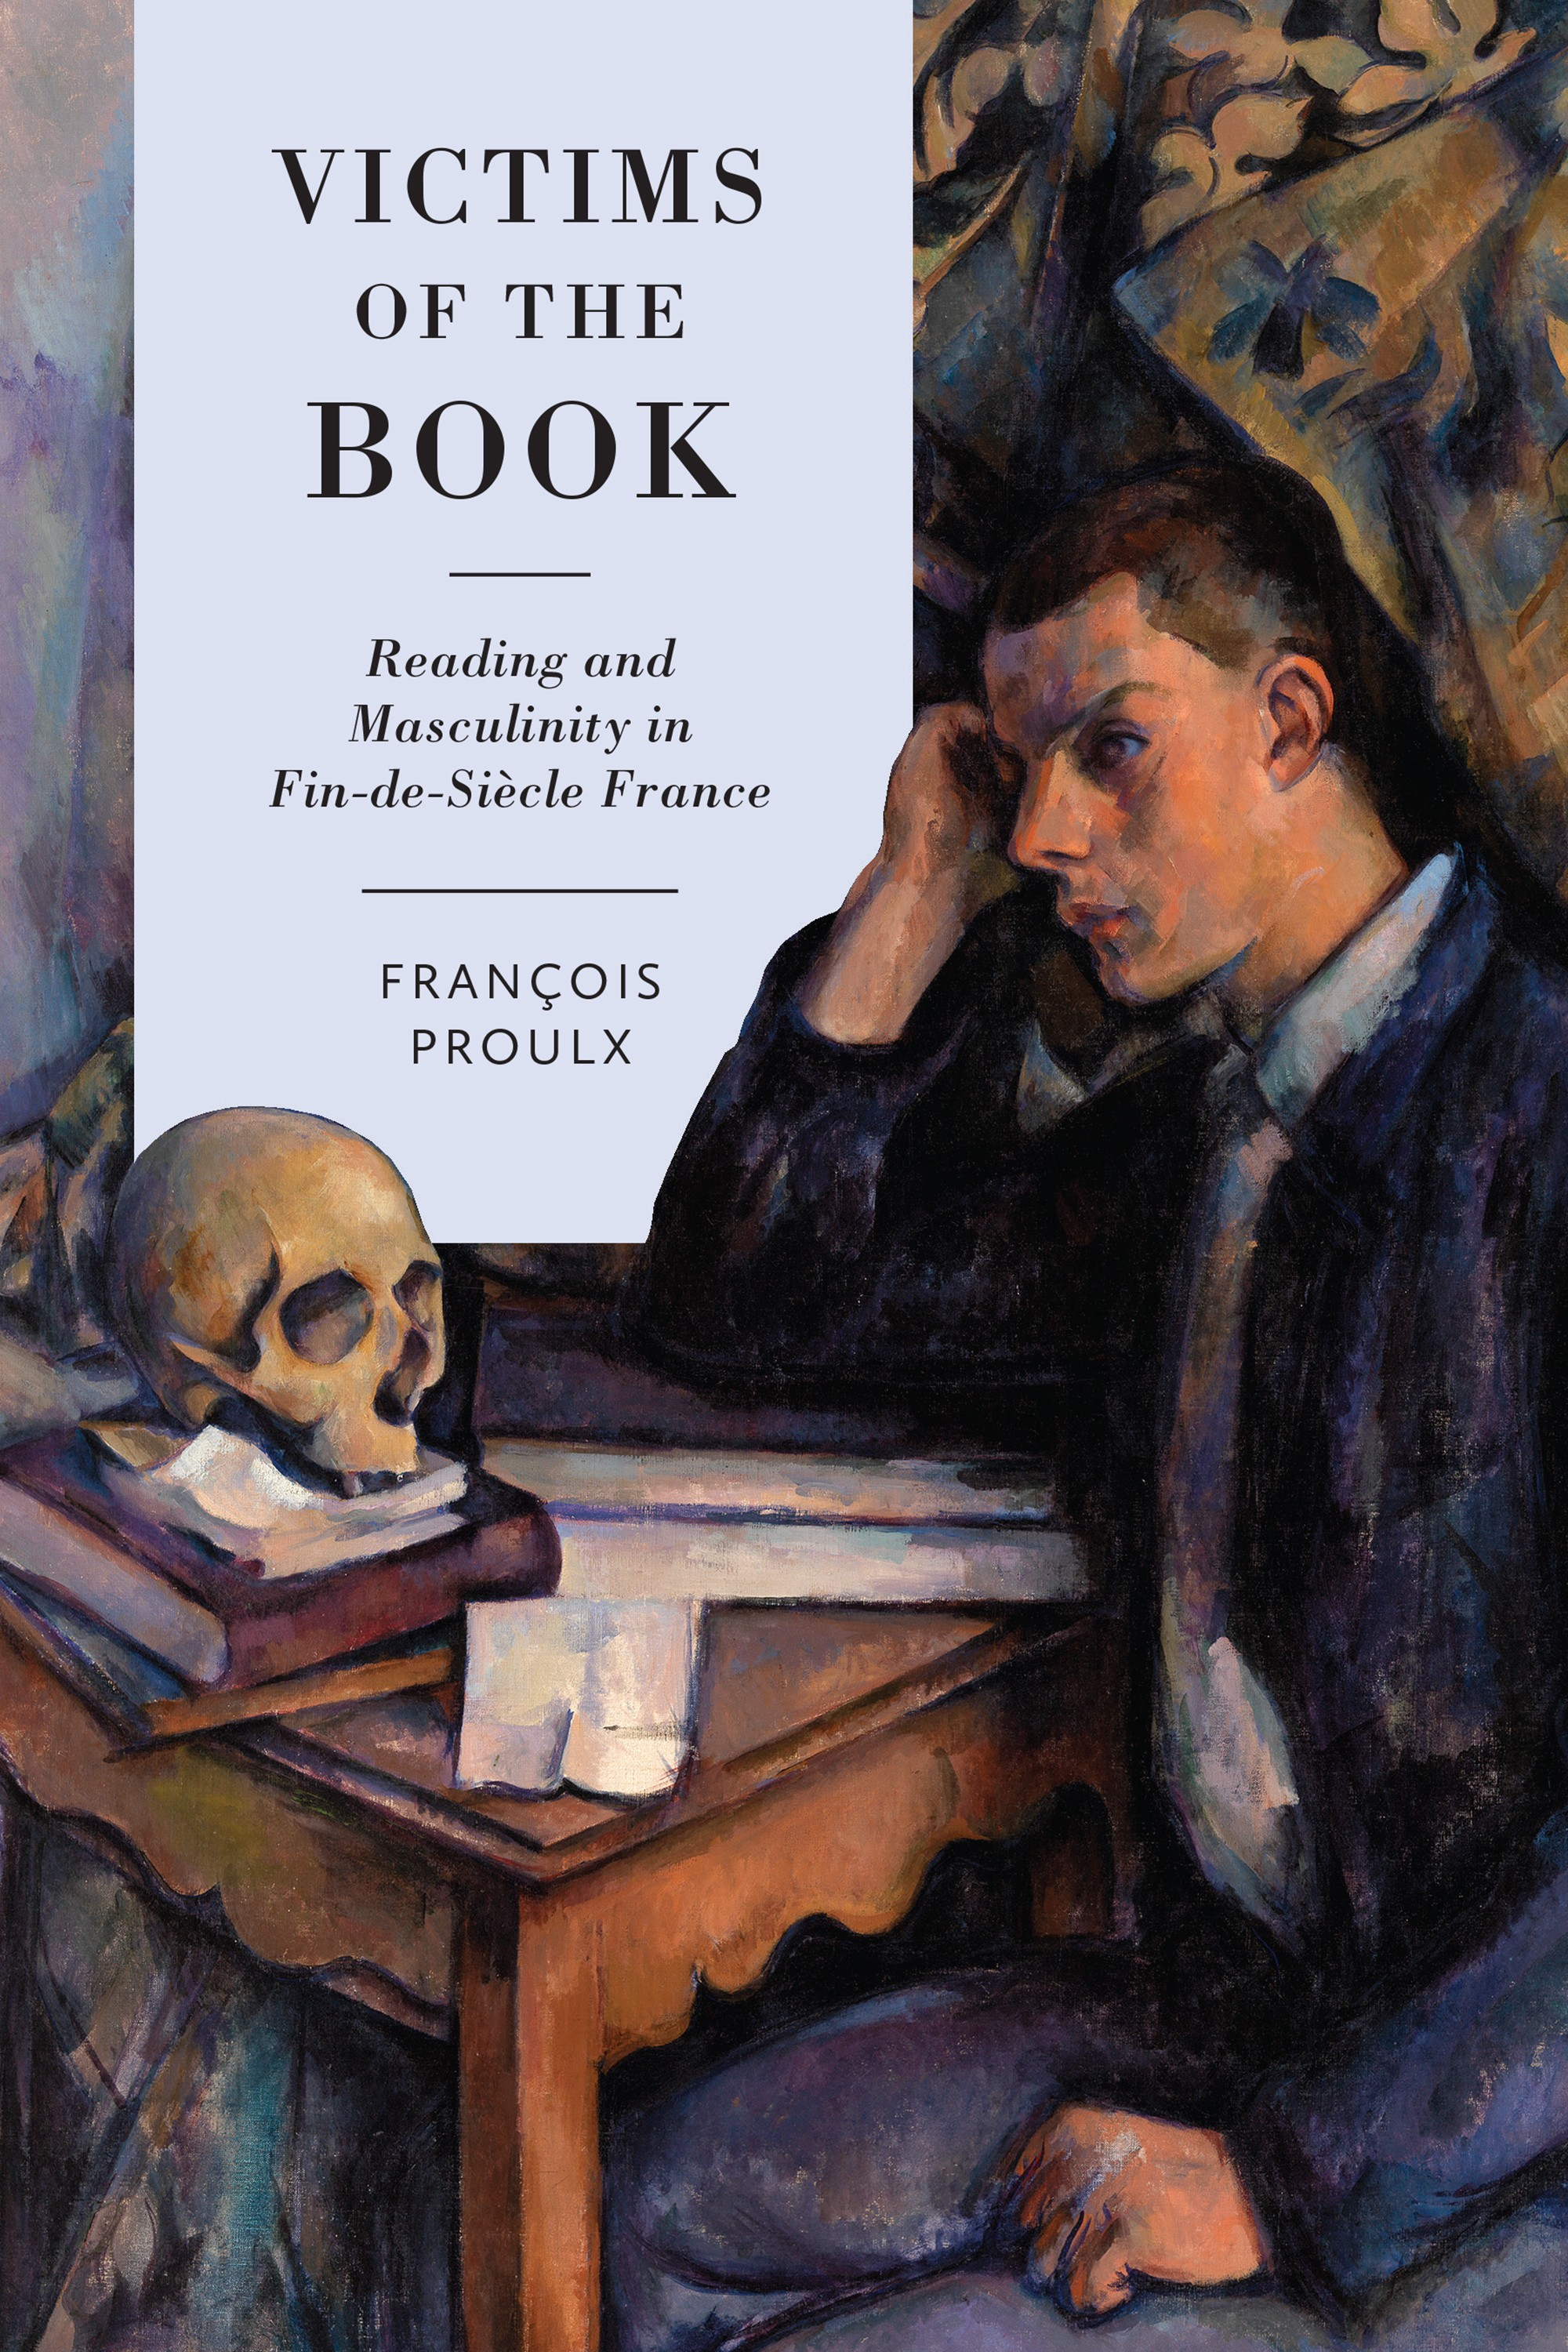 F. Proulx, Victims of the Book: Reading and Masculinity in Fin-de-Siècle France